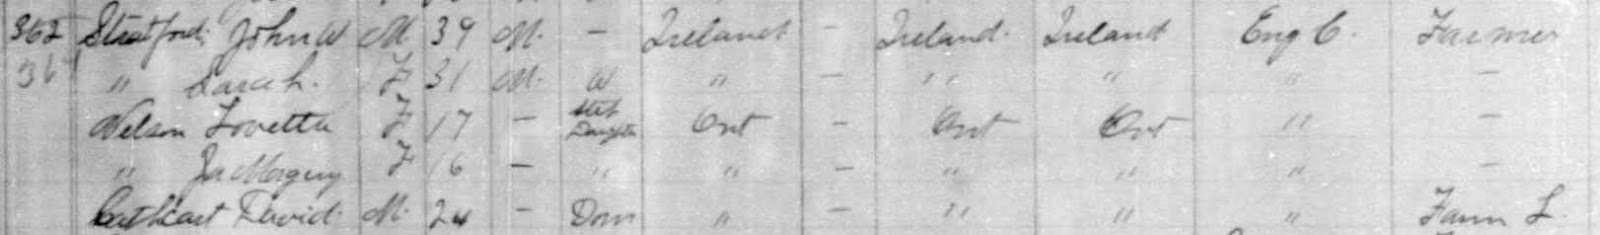 1891 census of Canada, Manitoba, district 7, sub-district G, North Cypress, p. 66, family 364, John W Stratford household; RG 31; digital images, Ancestry.com, Ancestry.com (http://www.ancestry.com/ : accessed 19 Jan 2015); citing Library and Archives Canada microfilm T-6293.